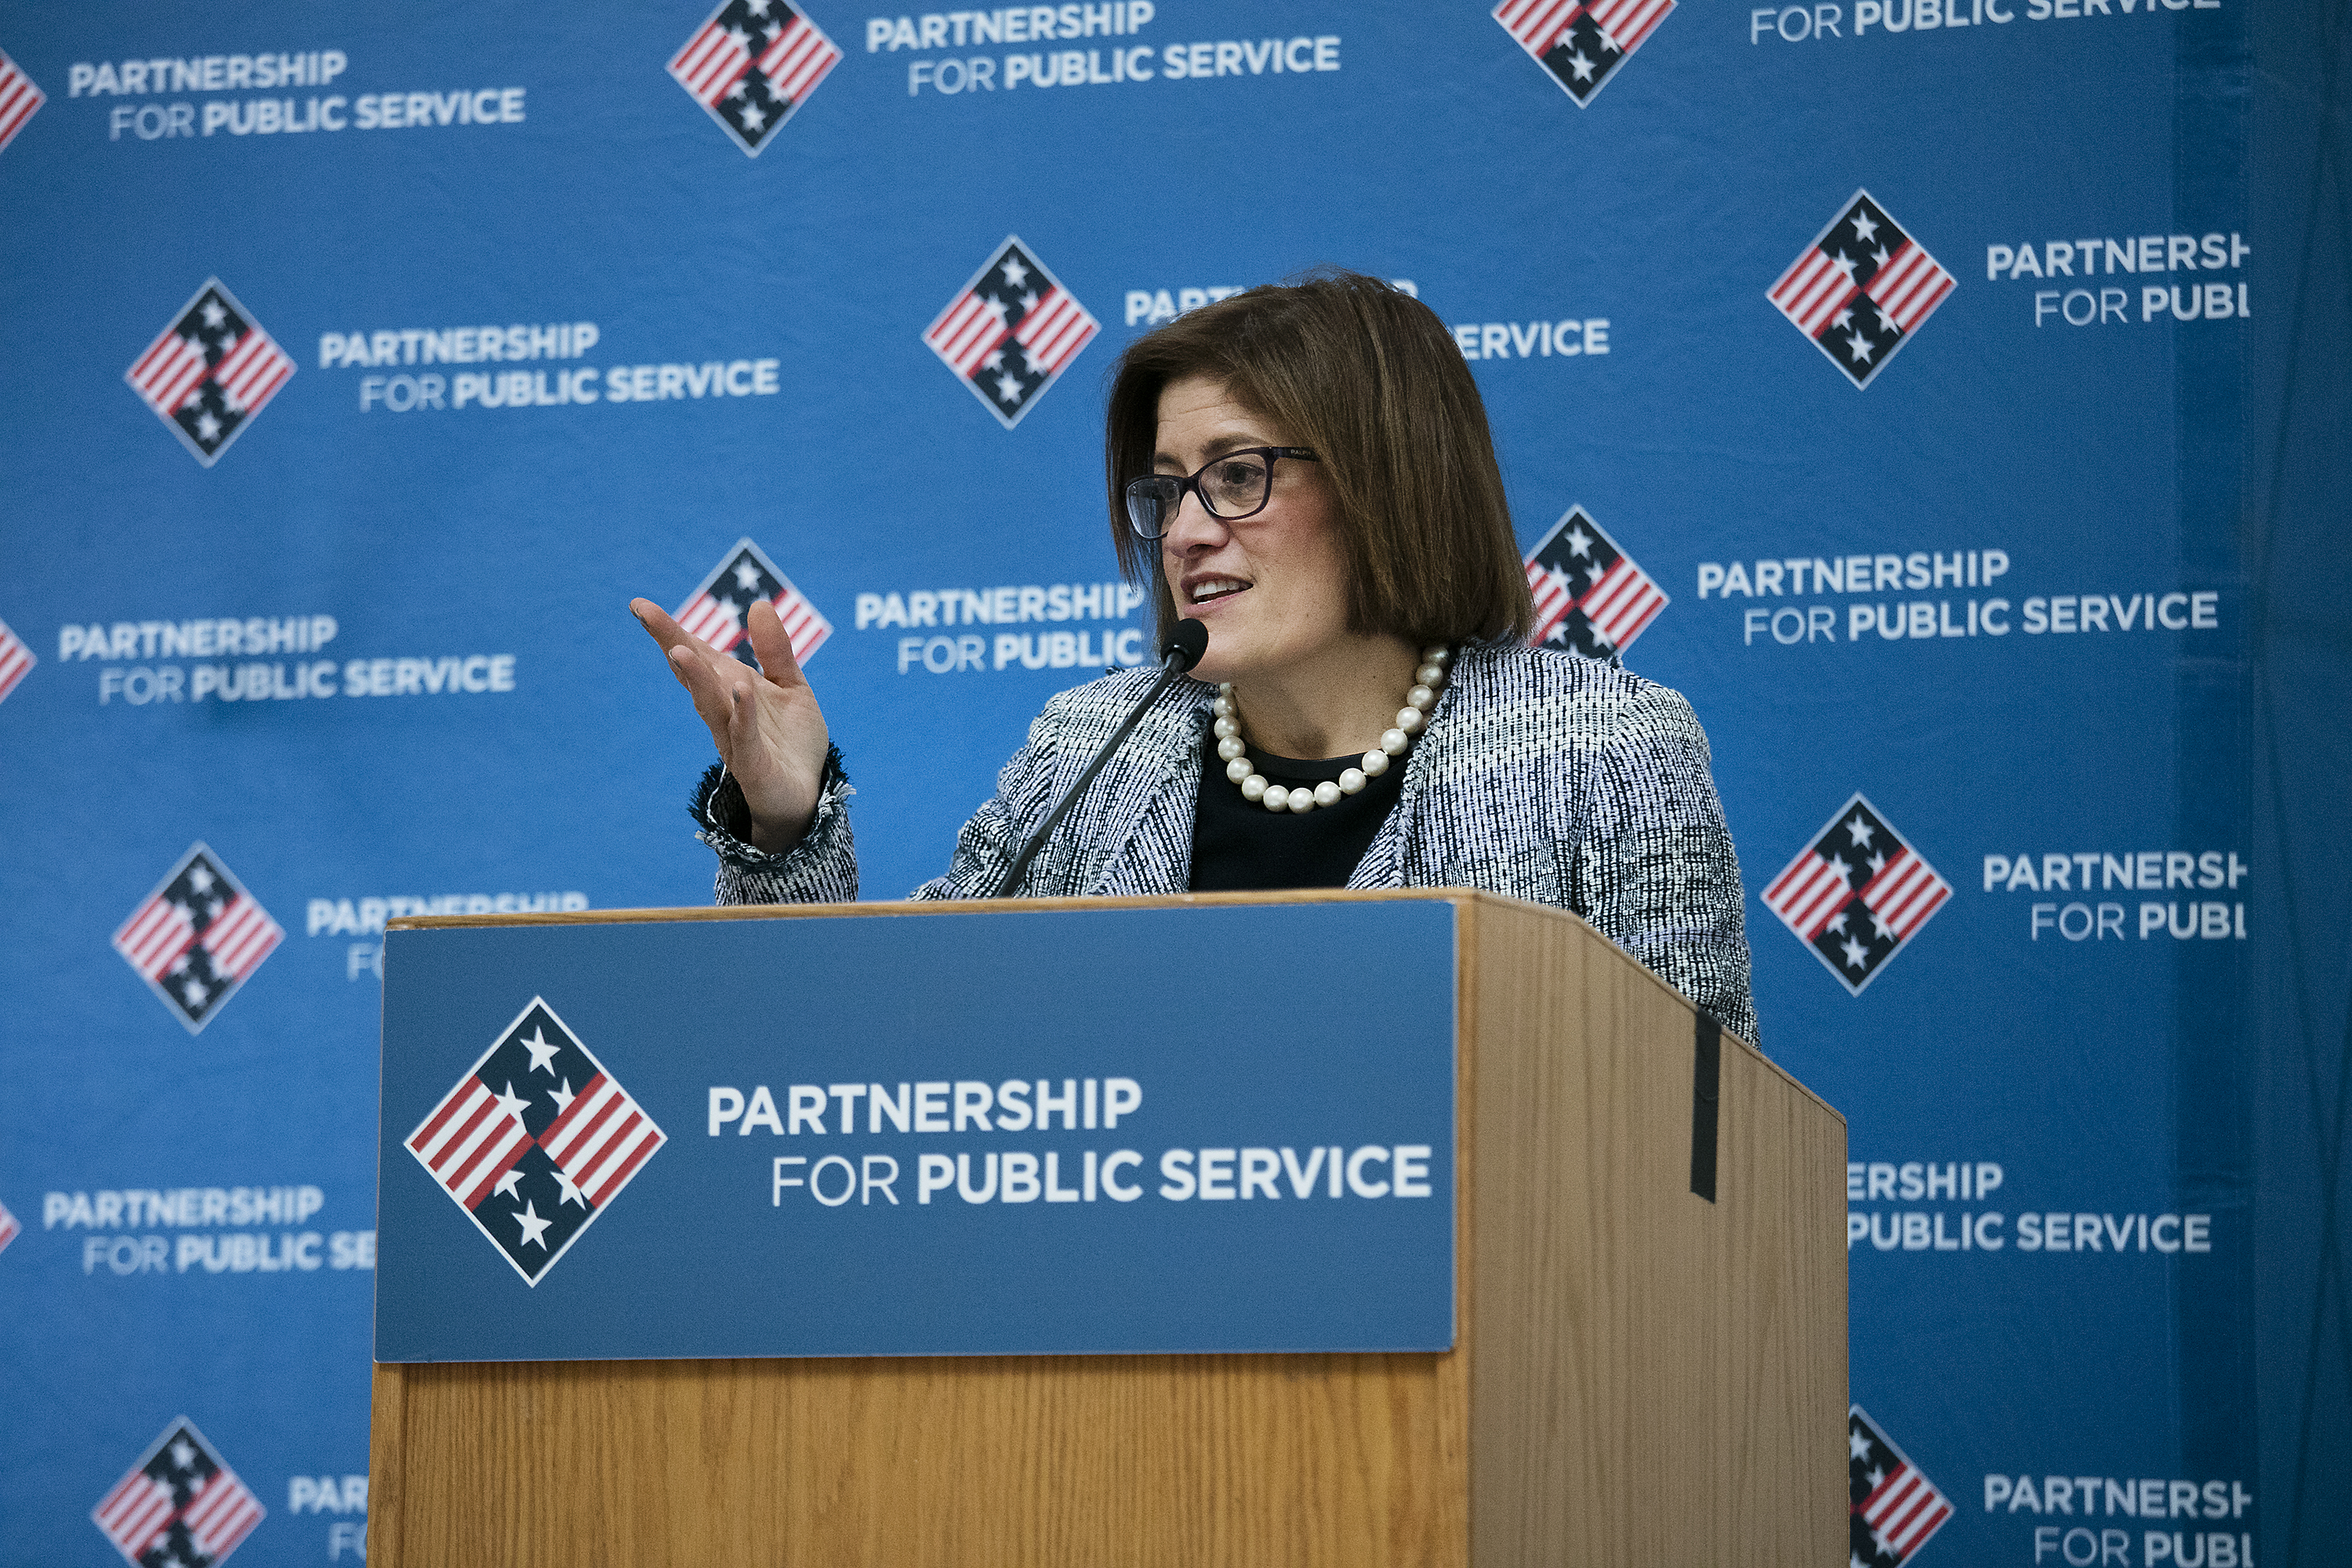 Acting OPM Director Cobert speaks from the podium at the Partnership for Public Service's Best Places to Work event.